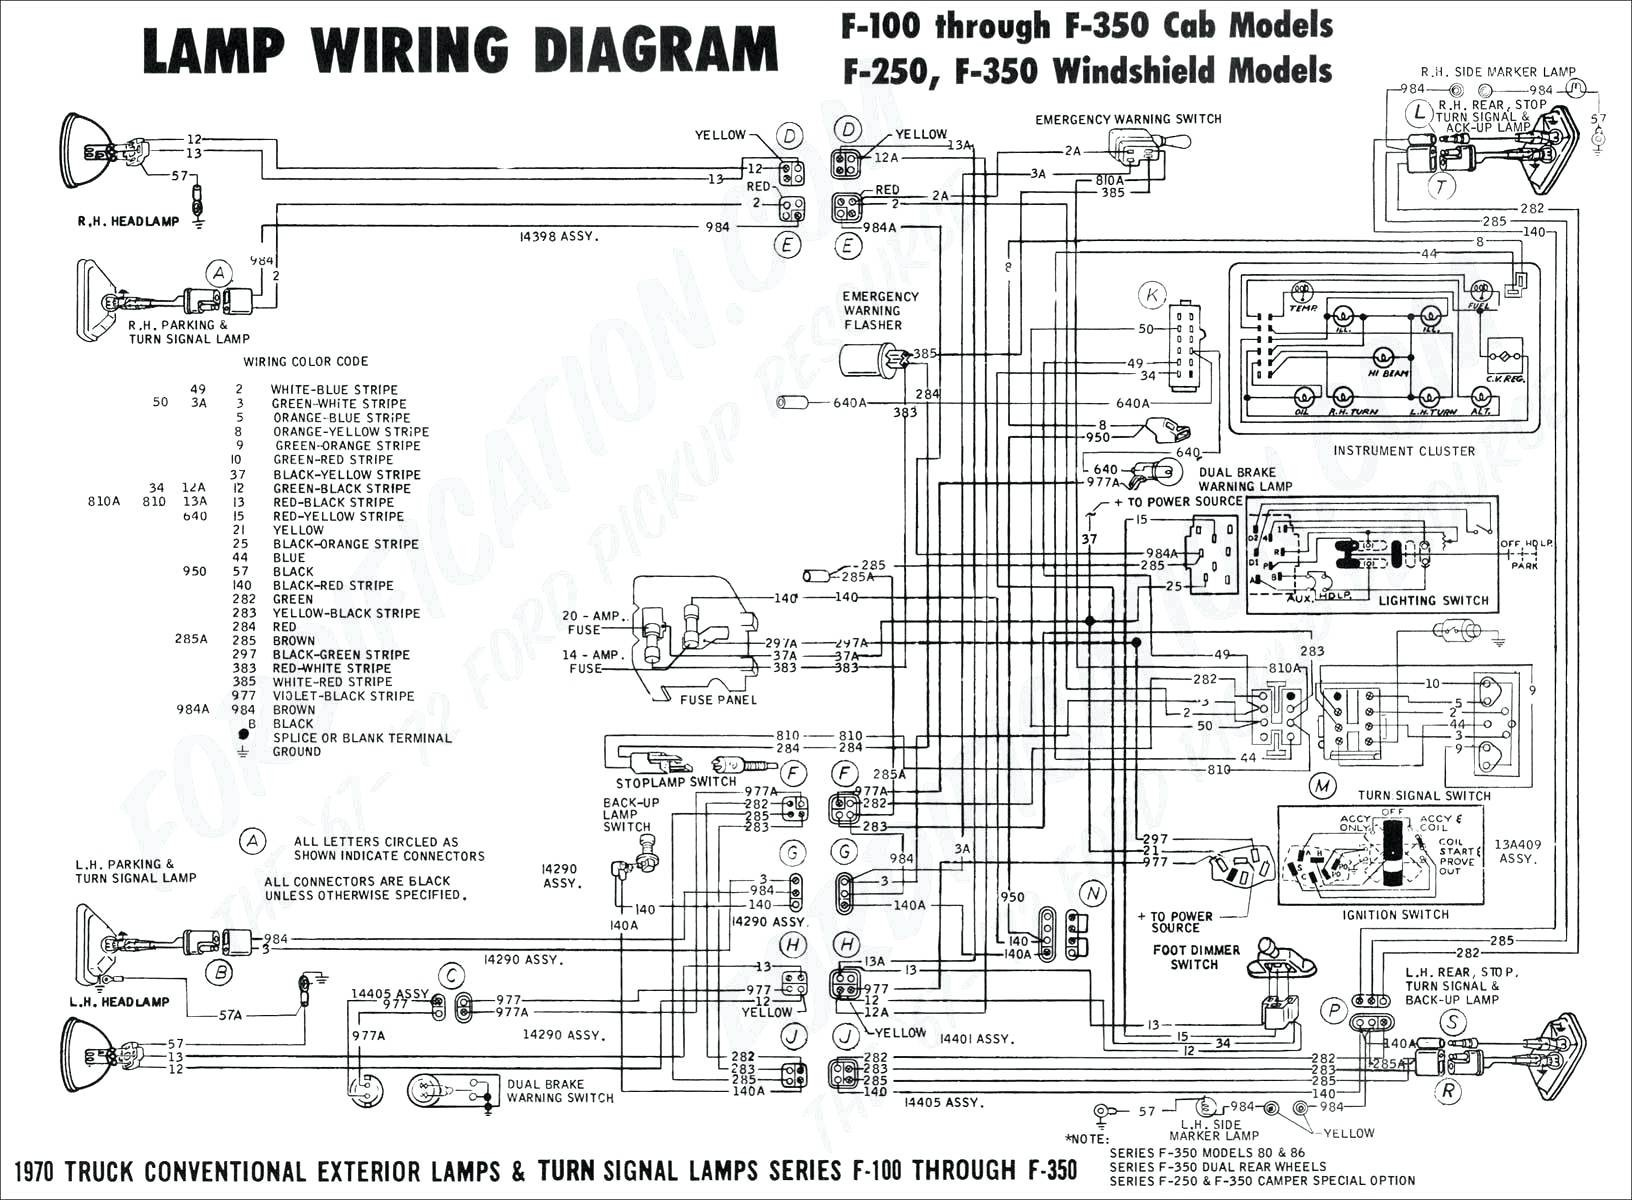 2000 Lincoln Ls V8 Engine Diagram 2000 Lincoln Ls Radio Wiring Diagram Worksheet and Wiring Diagram • Of 2000 Lincoln Ls V8 Engine Diagram